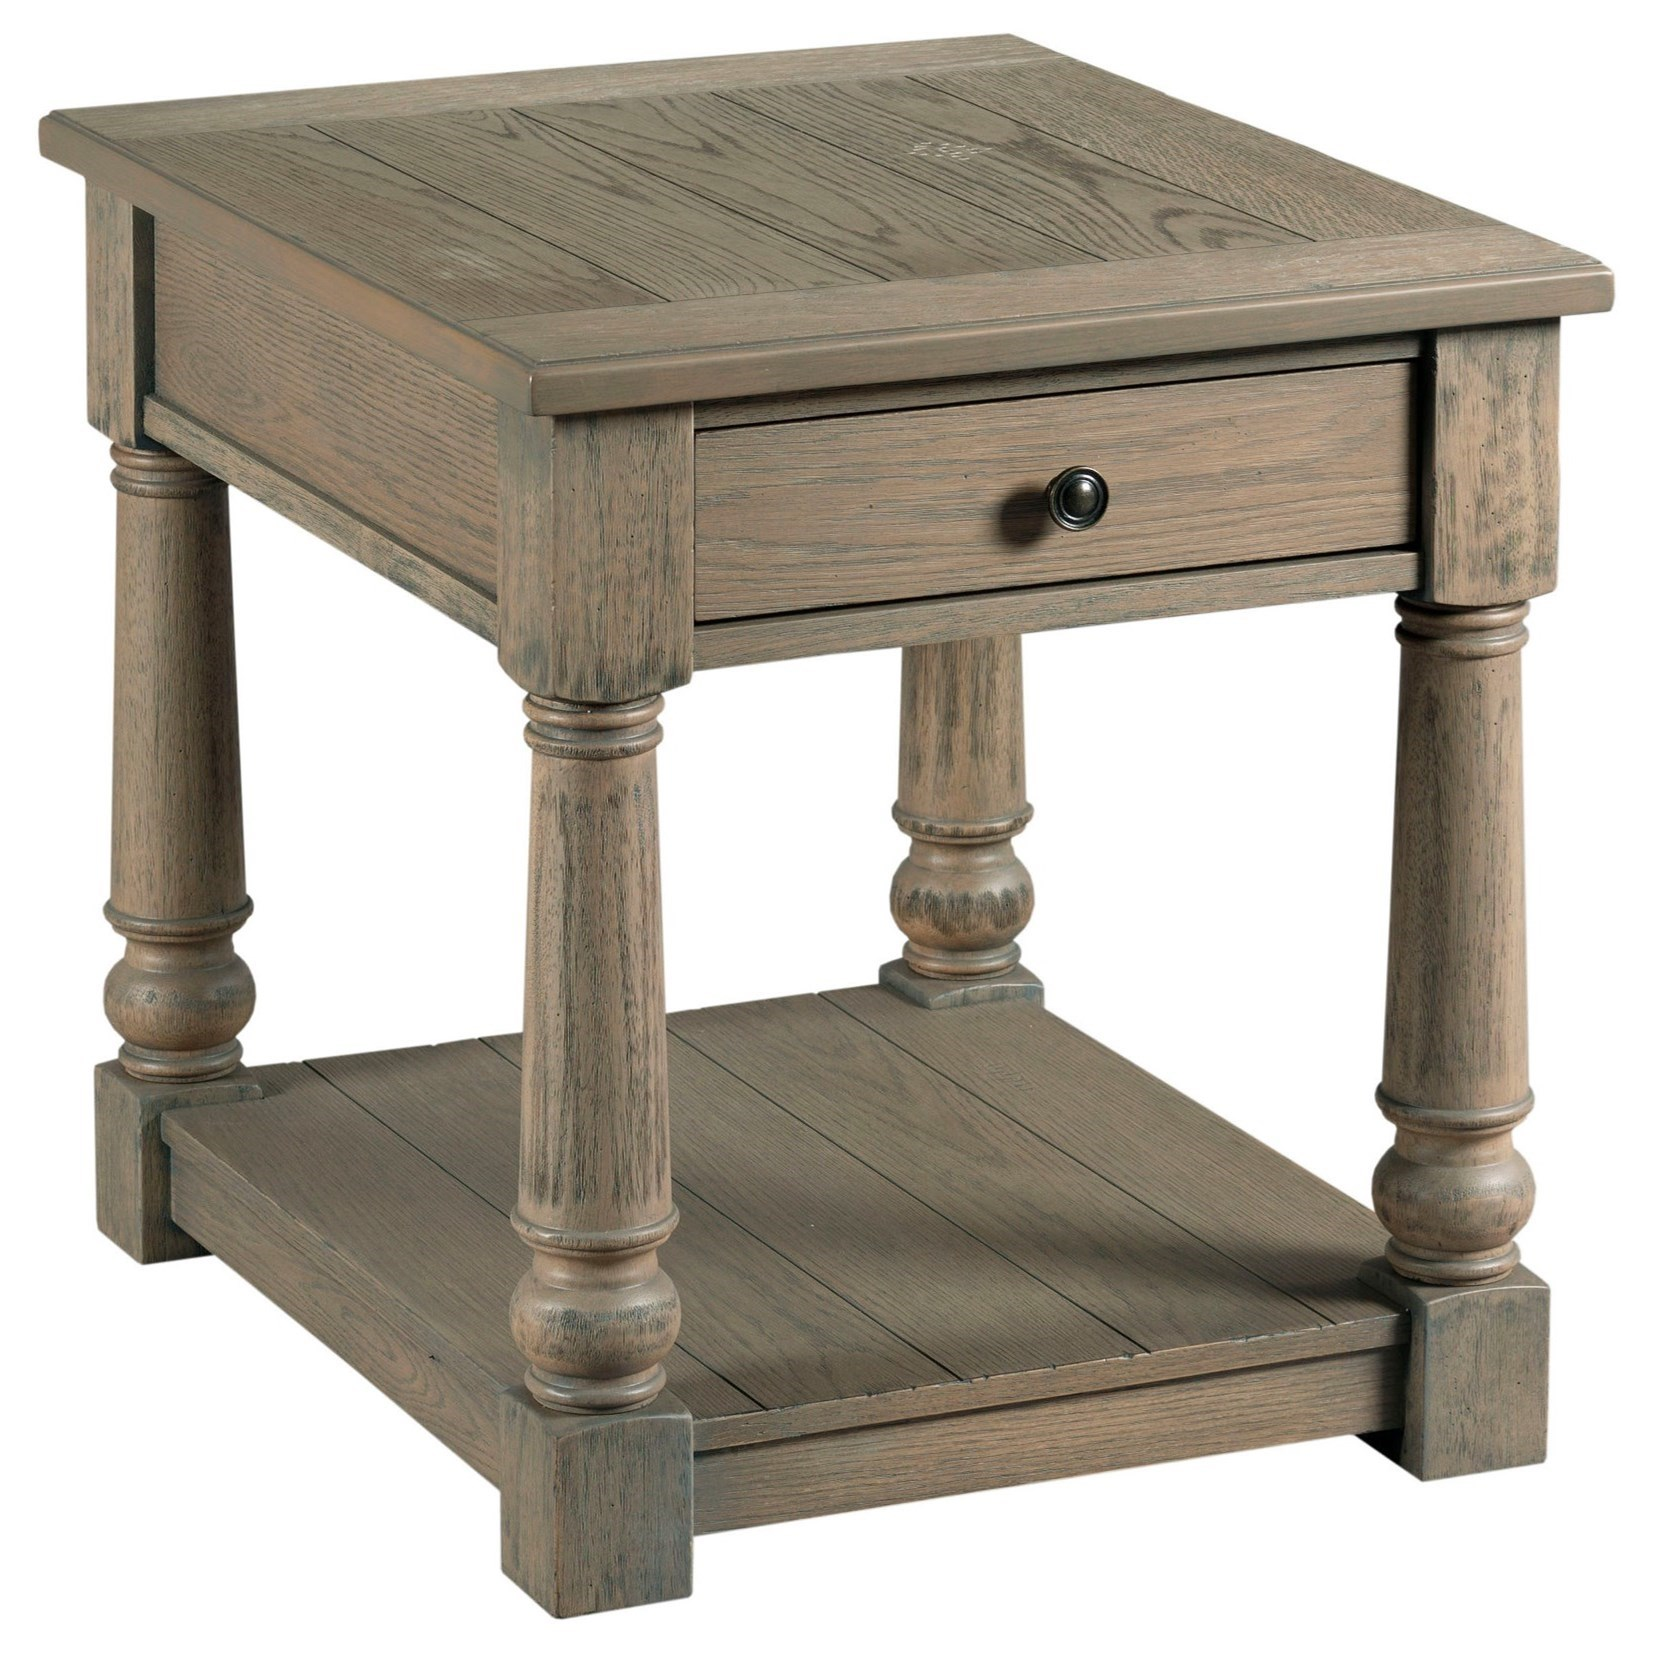 Outland Rectangular Drawer End Table by Alexvale at Northeast Factory Direct